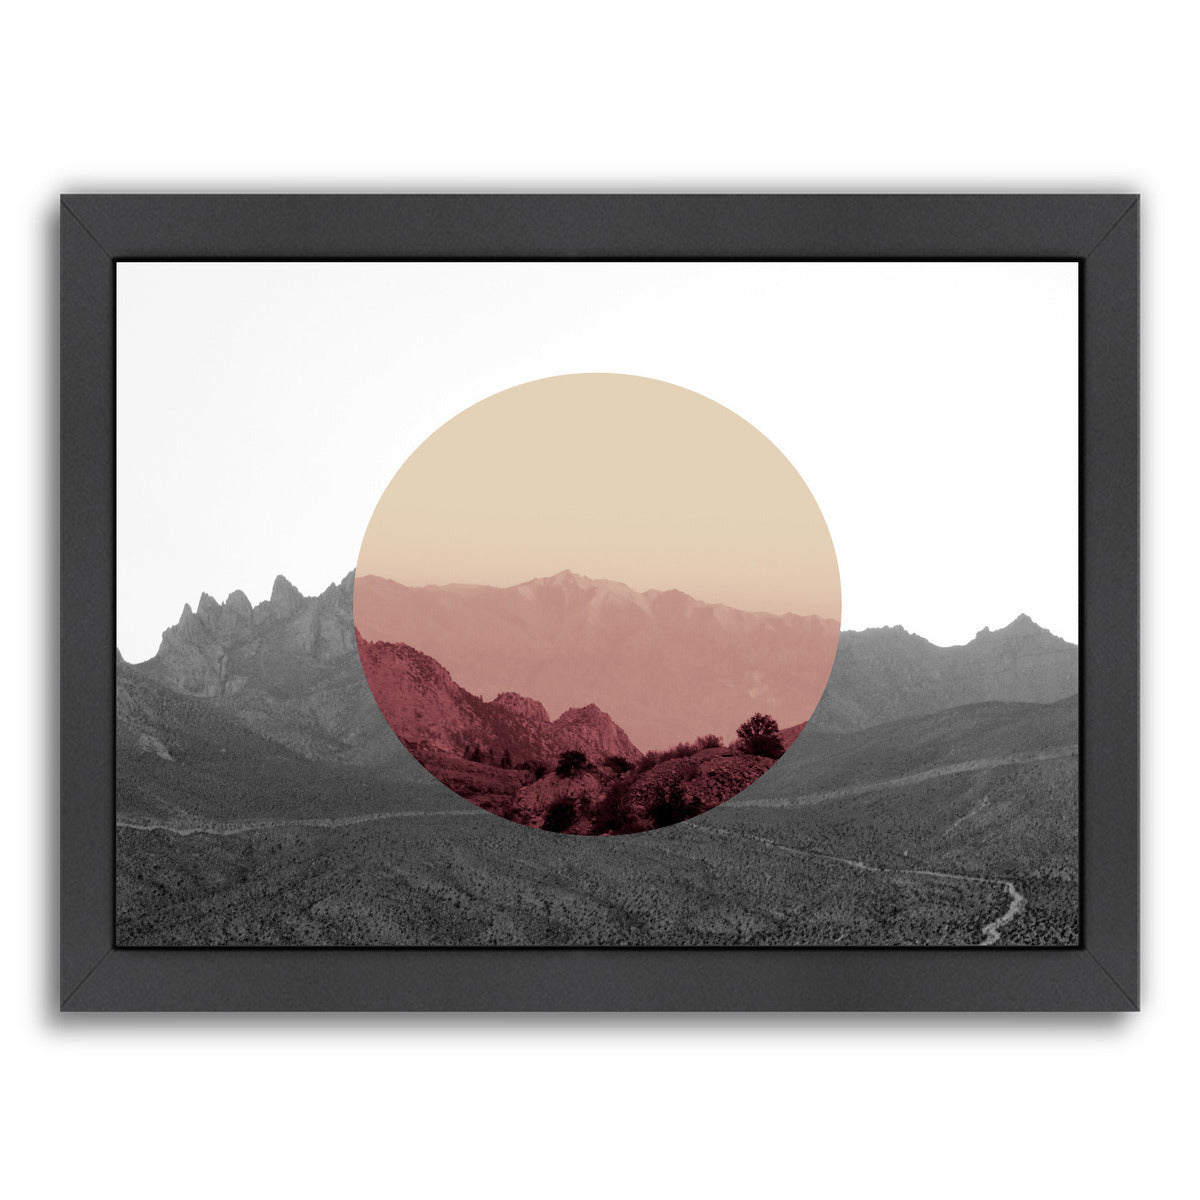 Shapes In Nature Iv by Hope Bainbridge - Black Framed Print - Wall Art - Americanflat